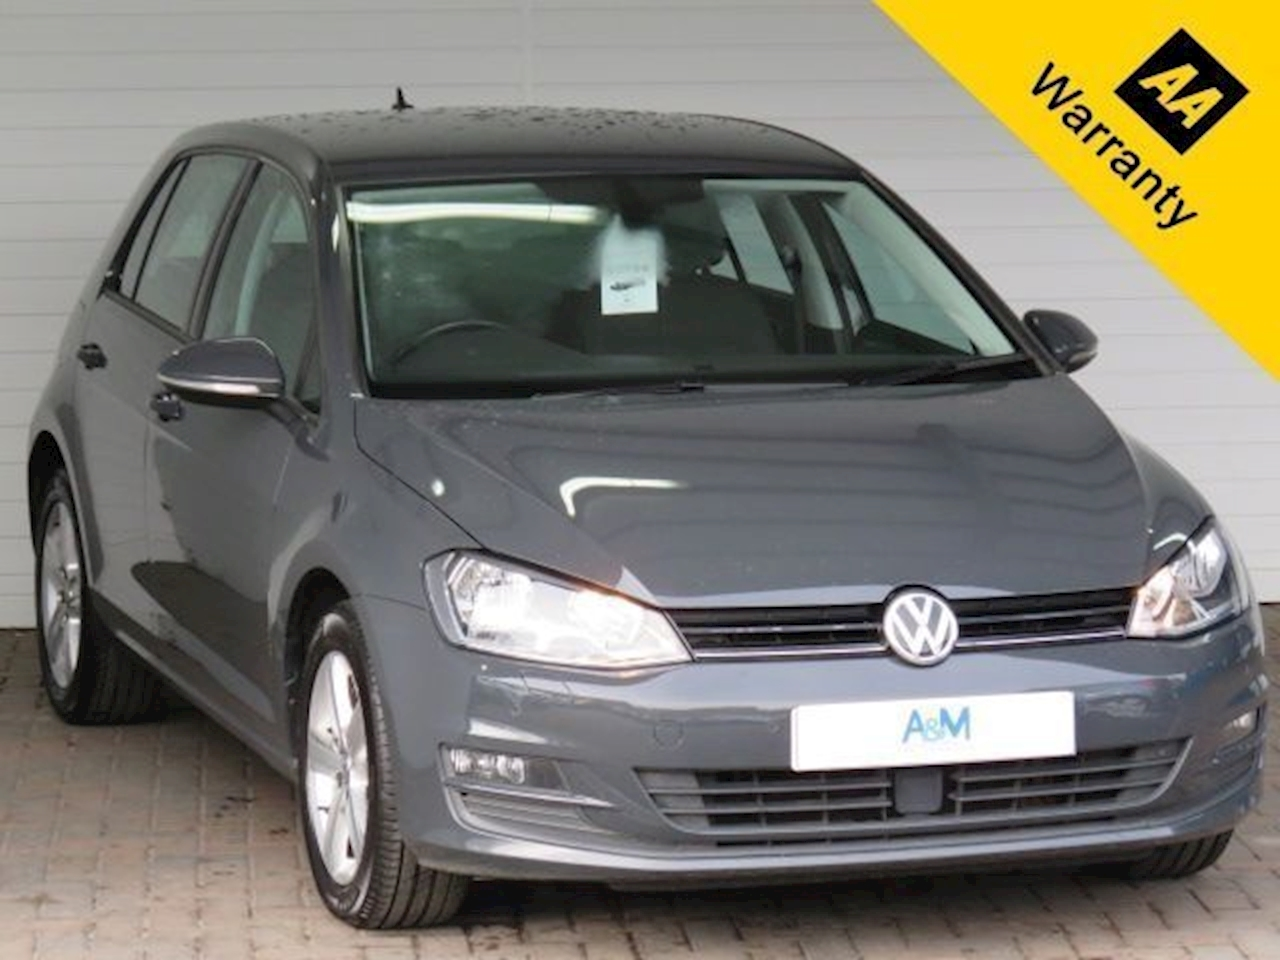 Volkswagen Golf Match Edition Tdi Bmt Hatchback 1.6 Manual Diesel